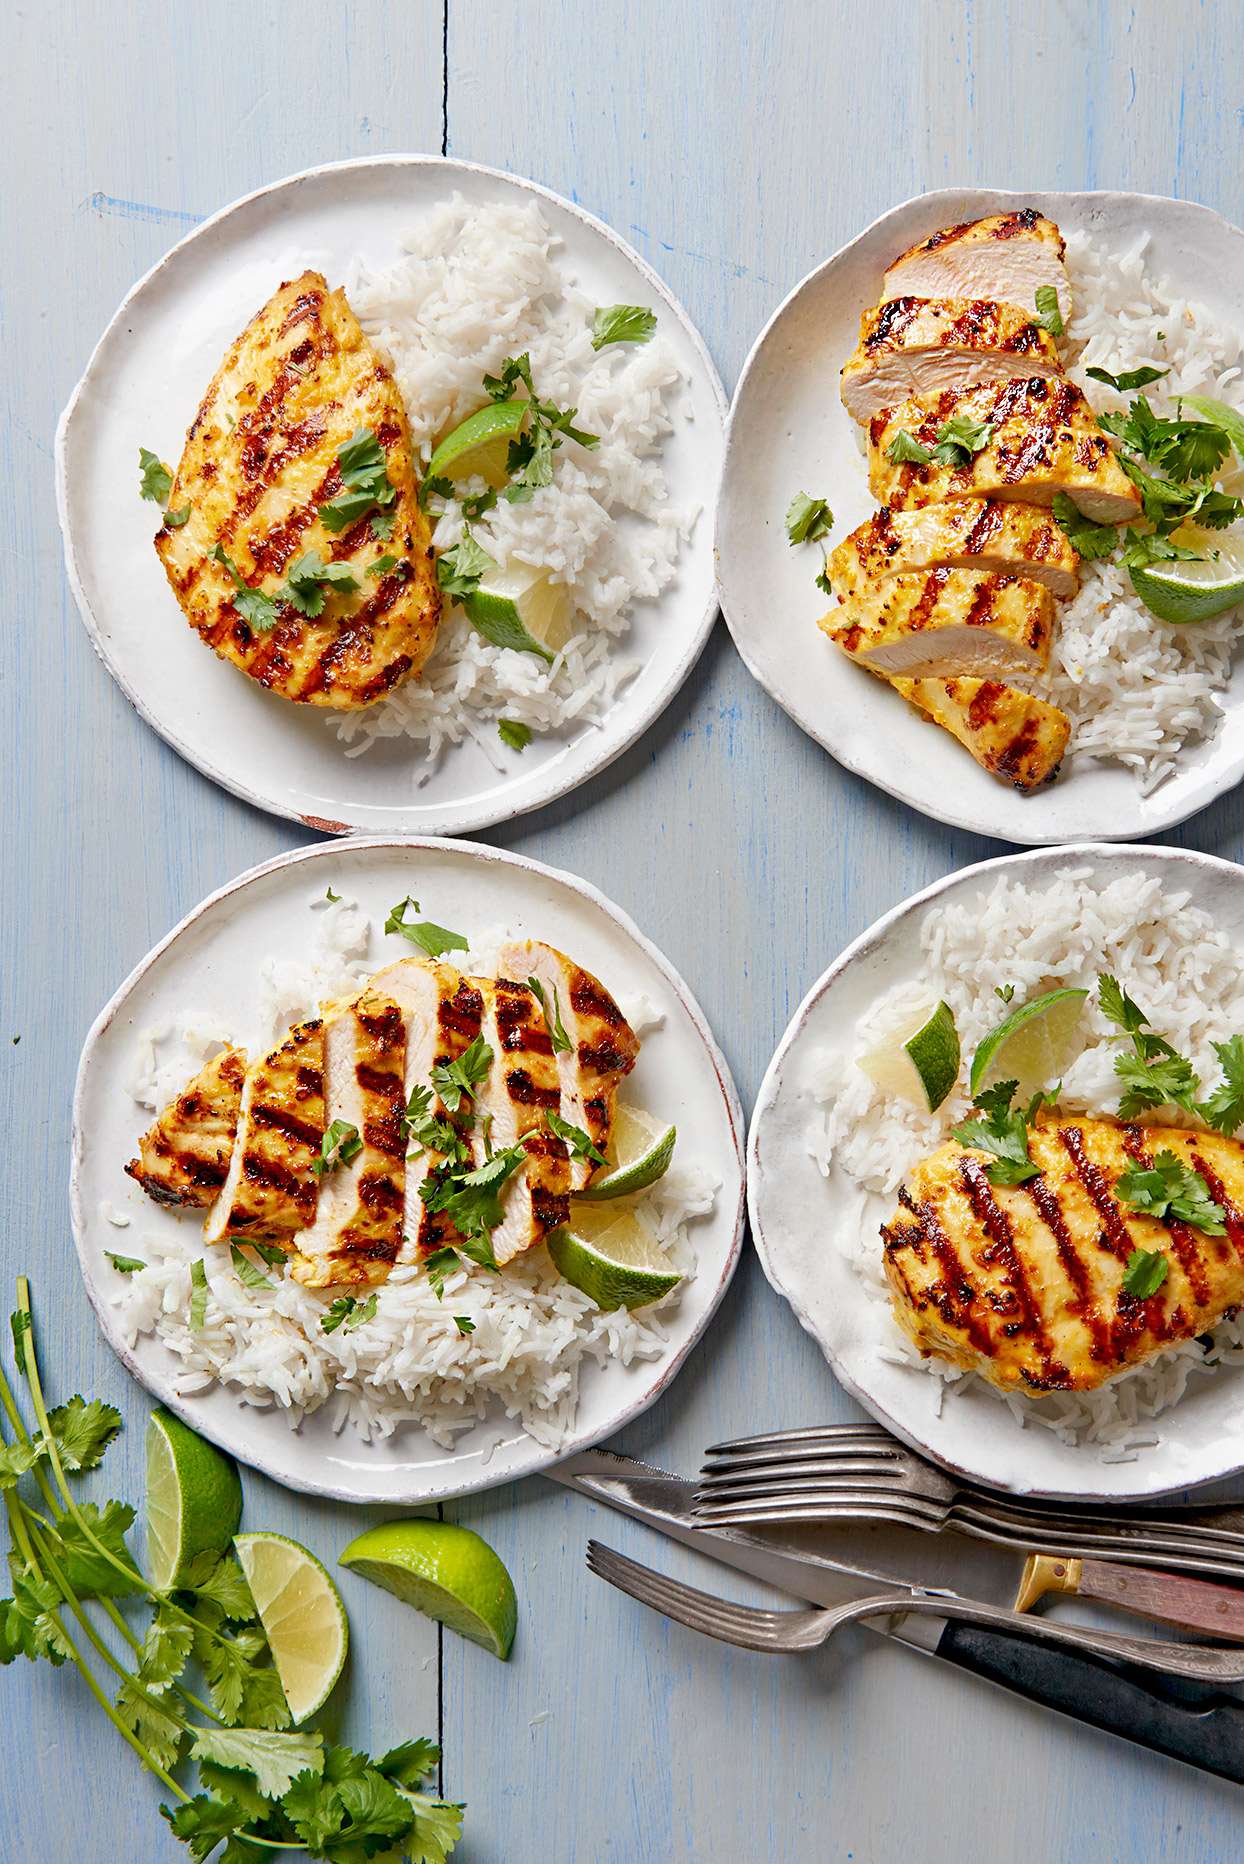 Turmeric-Ginger Marinated Chicken